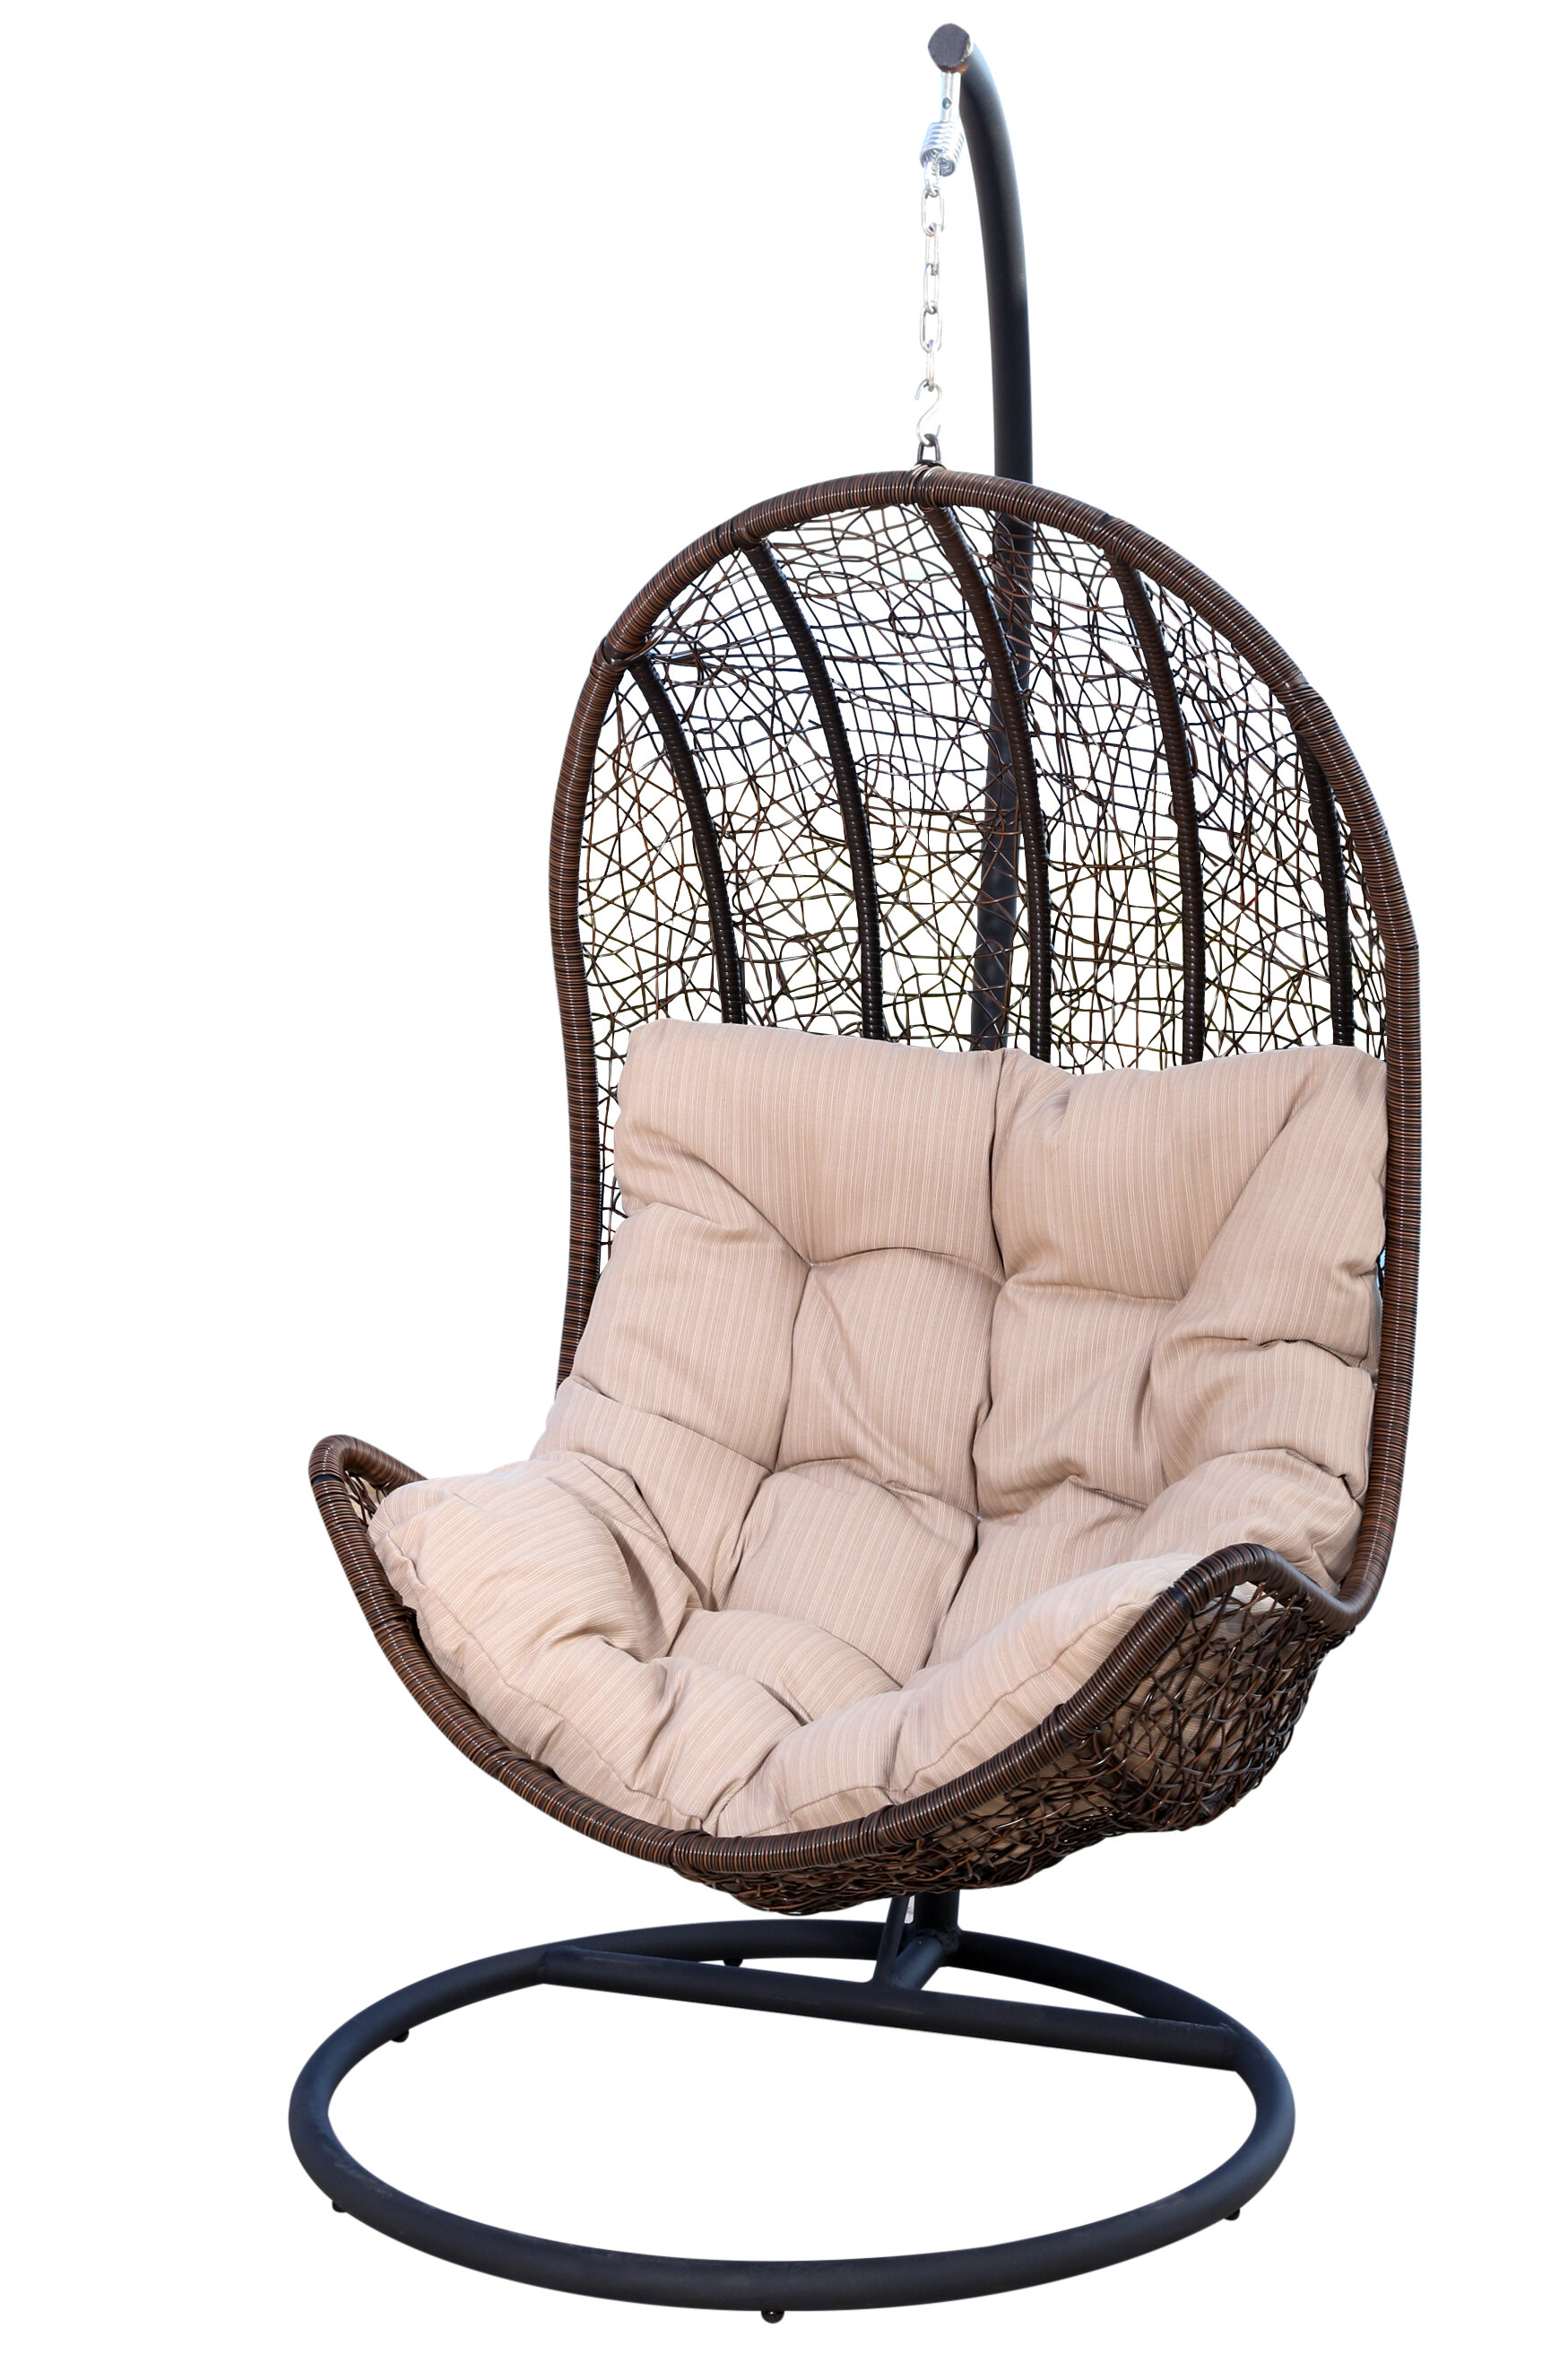 the guide free swing porch best reviews chair hammock expert overview standing